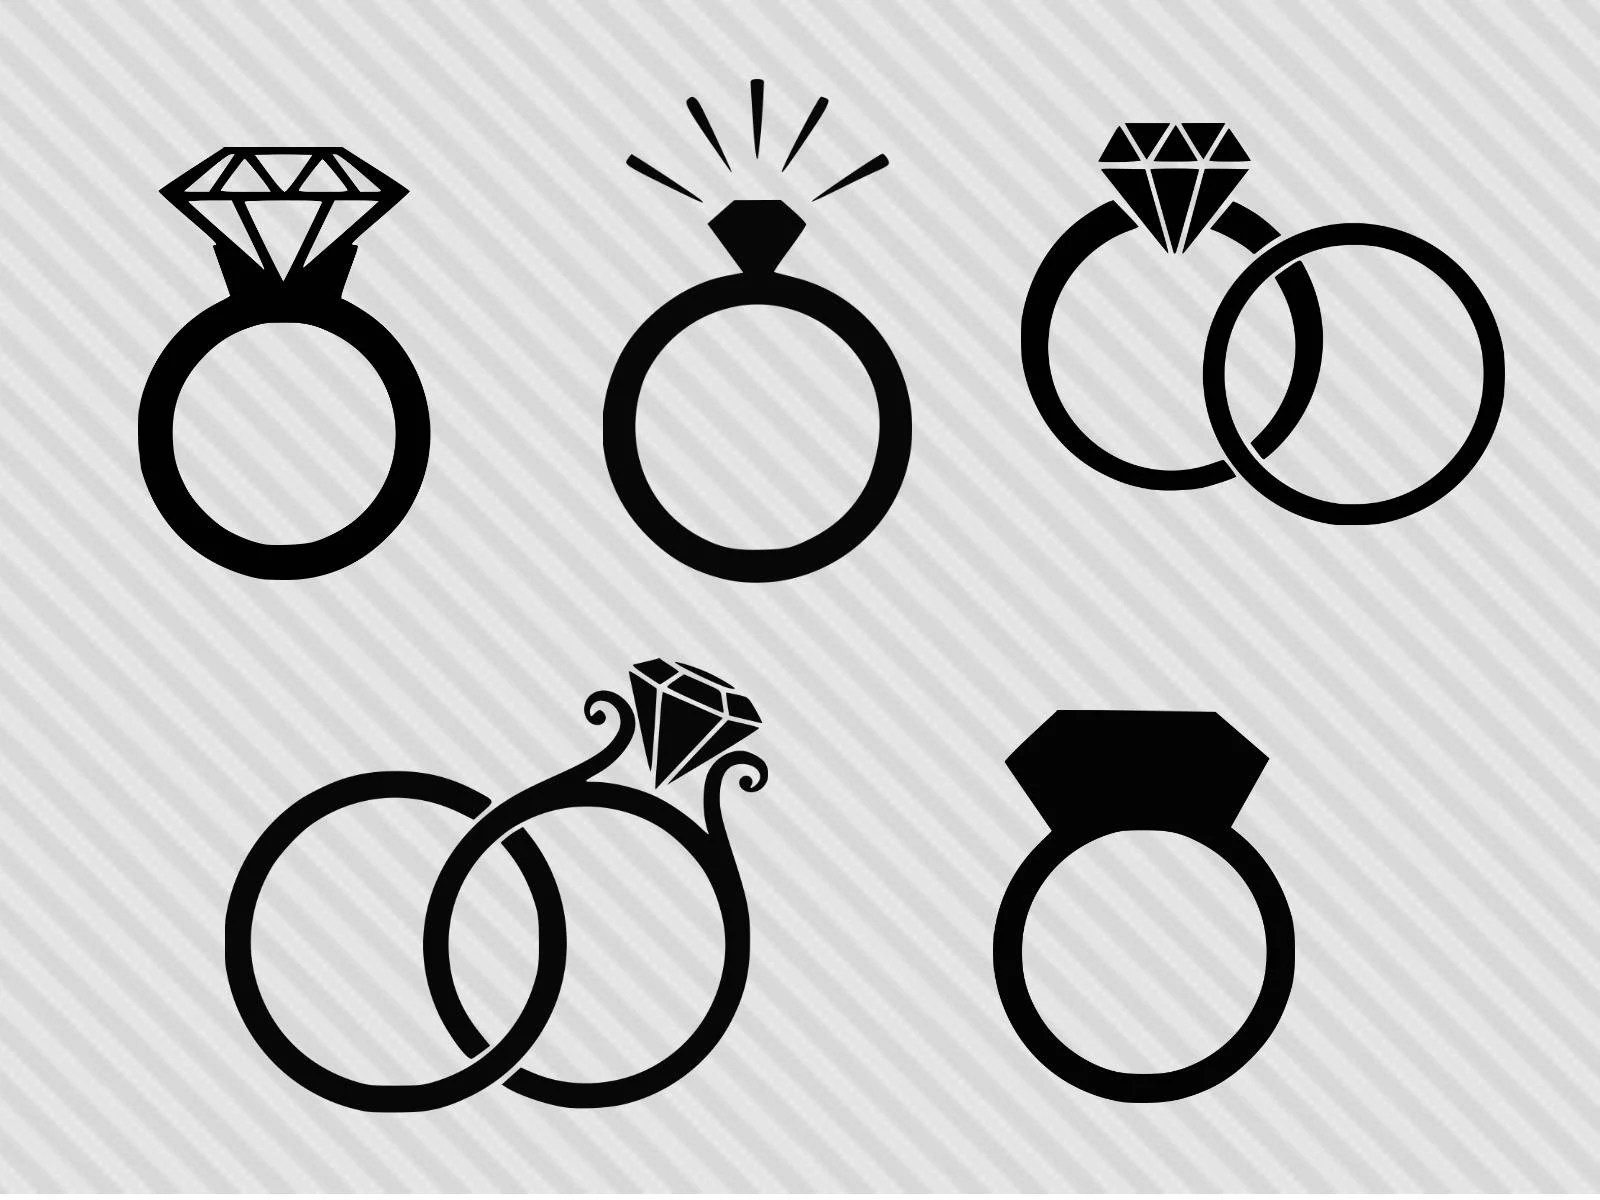 Engagement Ring Svg Engagement Ring Clipart Dxf Diamond